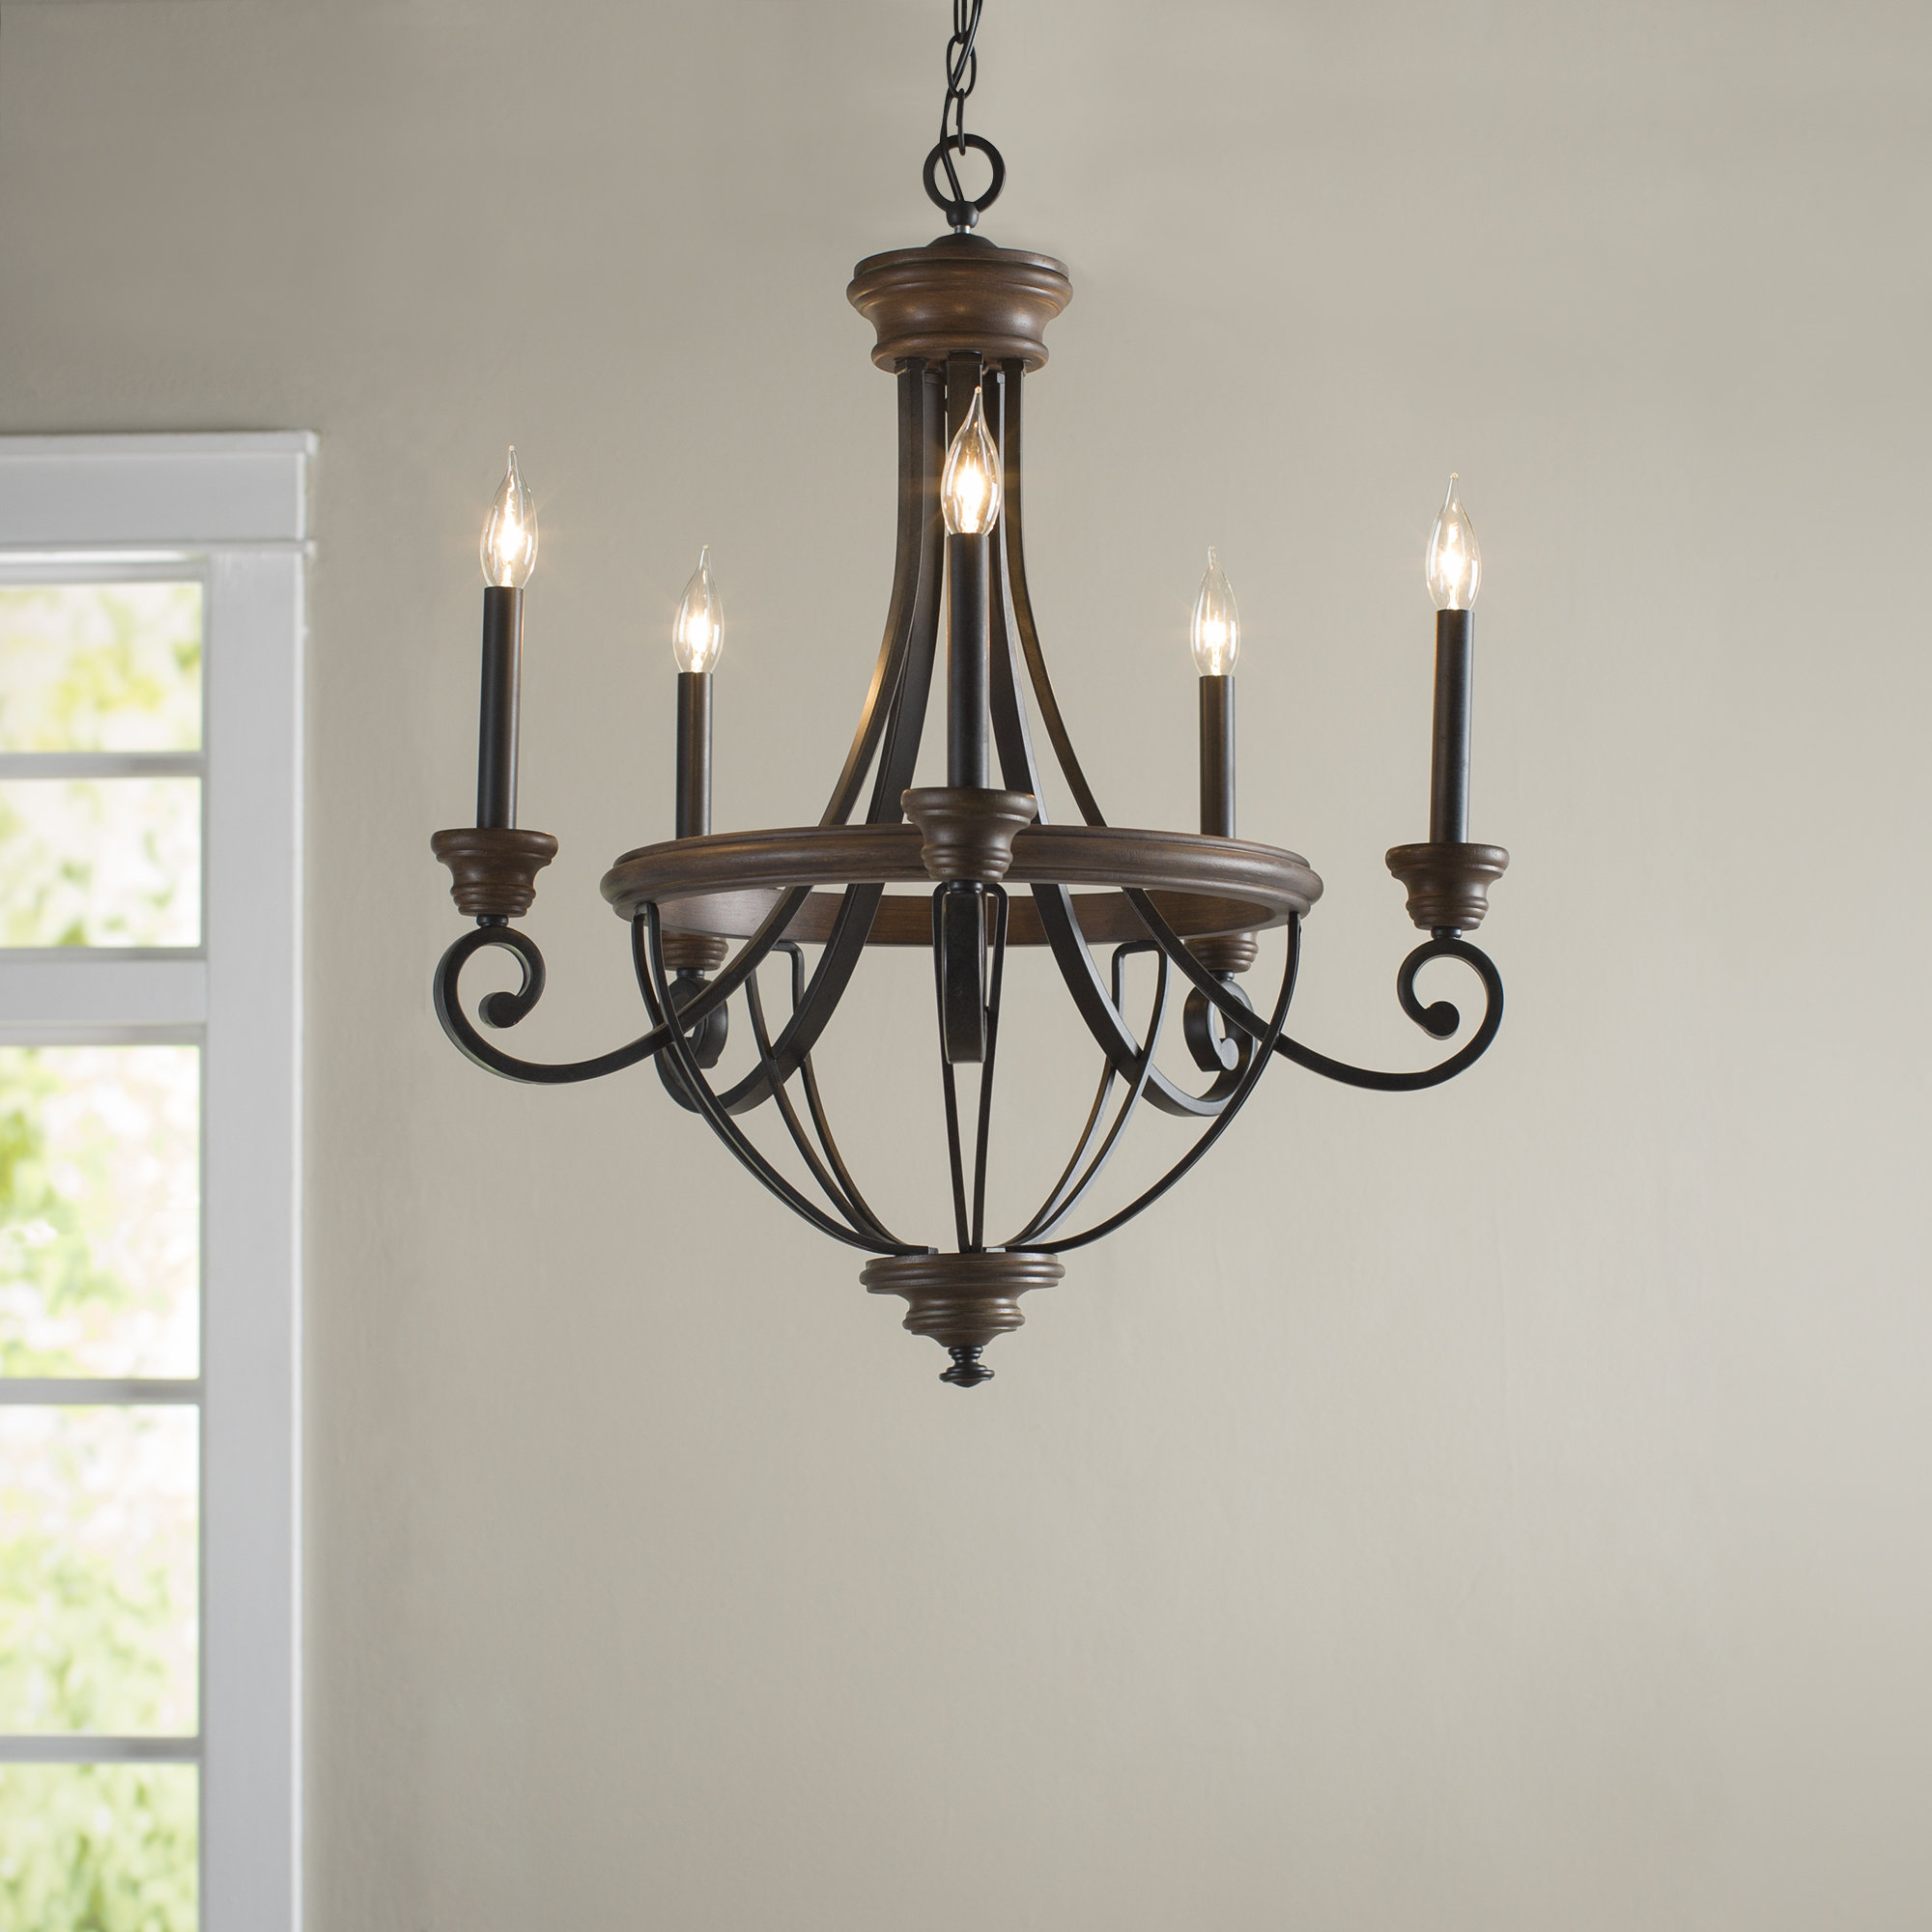 Widely Used Kenna 5 Light Empire Chandeliers Inside Laurel Foundry Modern Farmhouse Nanteuil 5 Light Empire Chandelier (View 11 of 25)